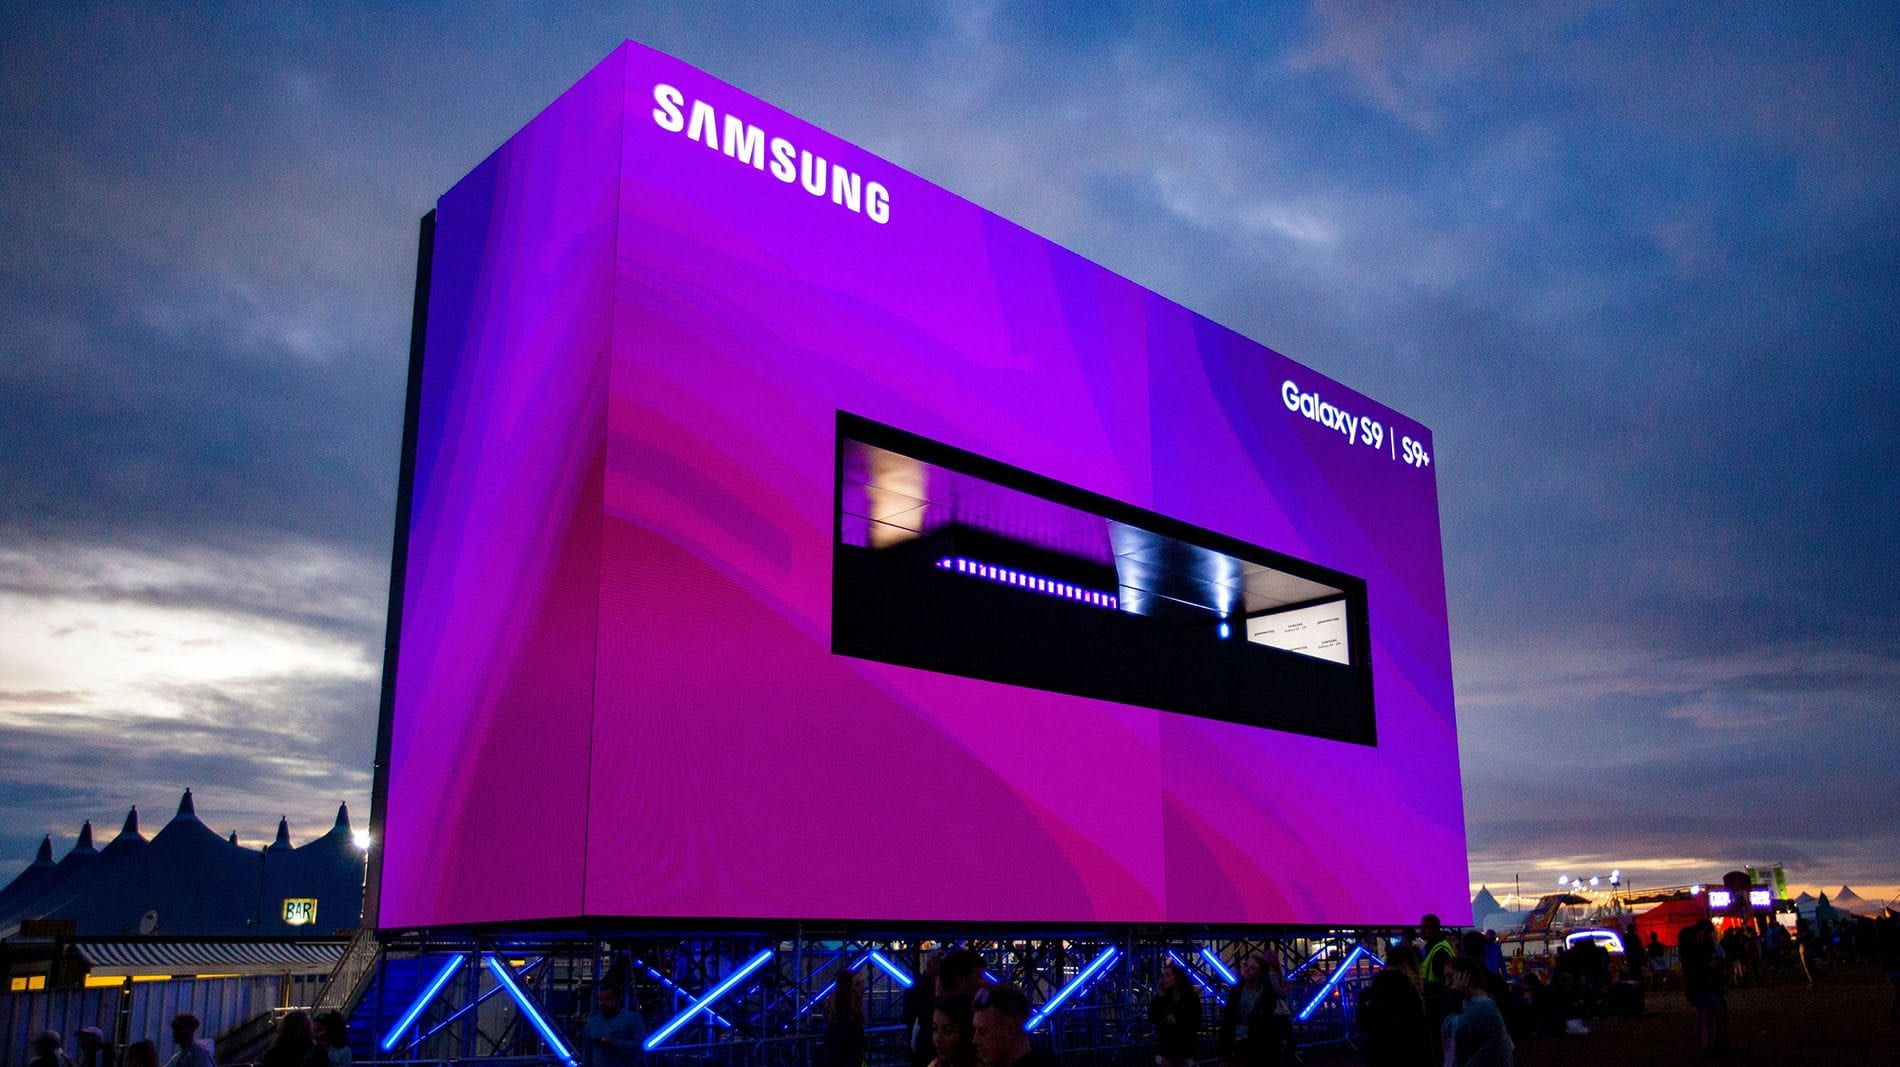 Samsung - Outdoor LED Display